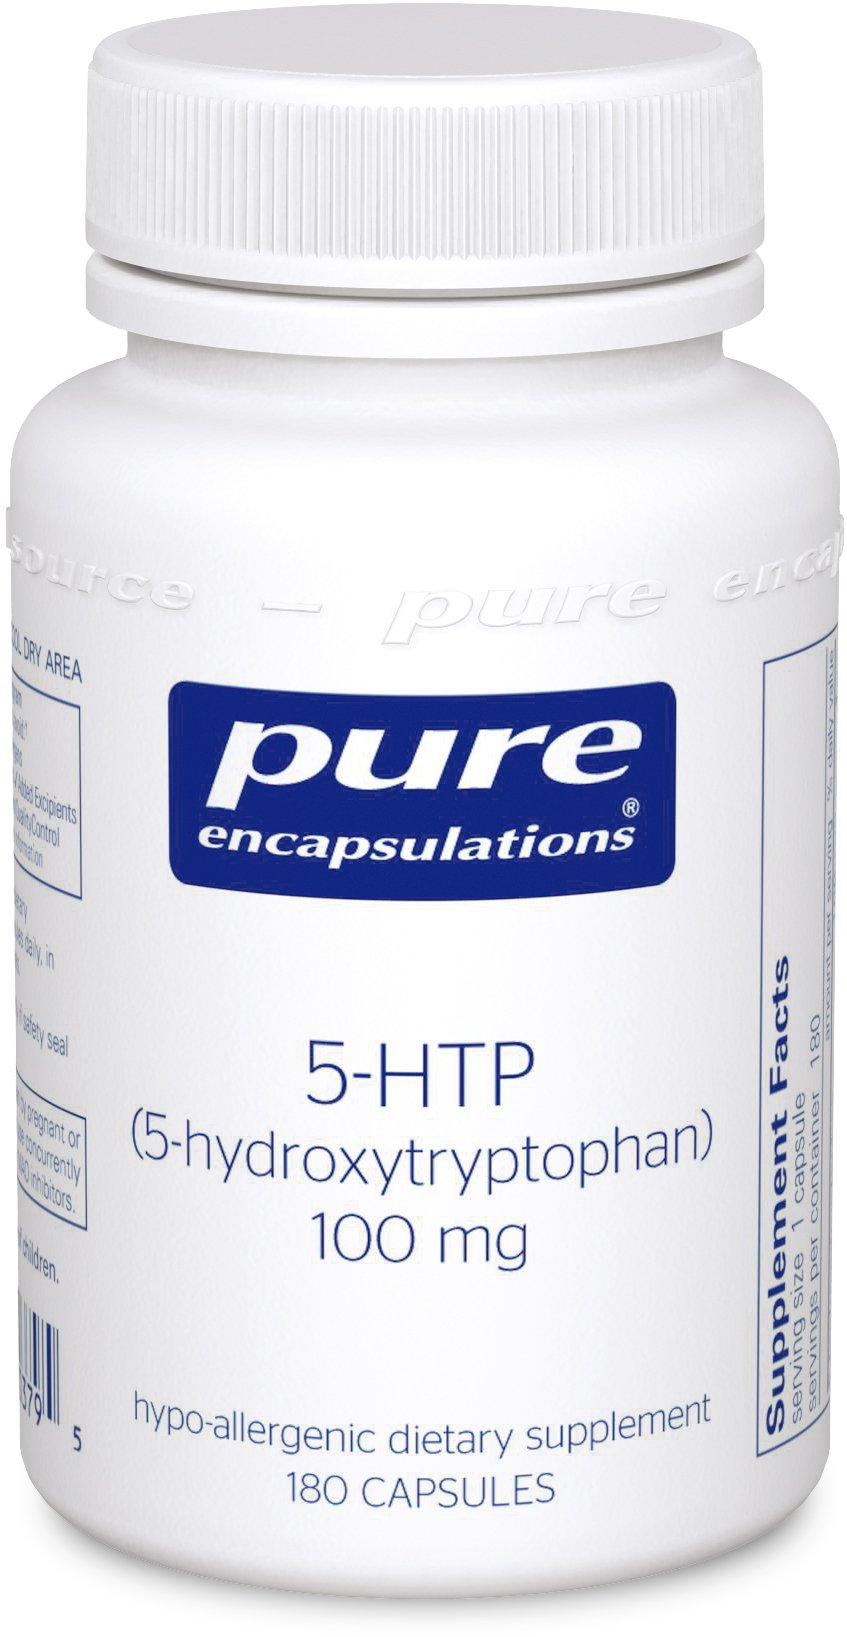 Pure Encapsulations - 5-HTP (5-Hydroxytryptophan) 100 mg - Hypoallergenic Dietary Supplement to Promote Serotonin Synthesis* - 180 Capsules